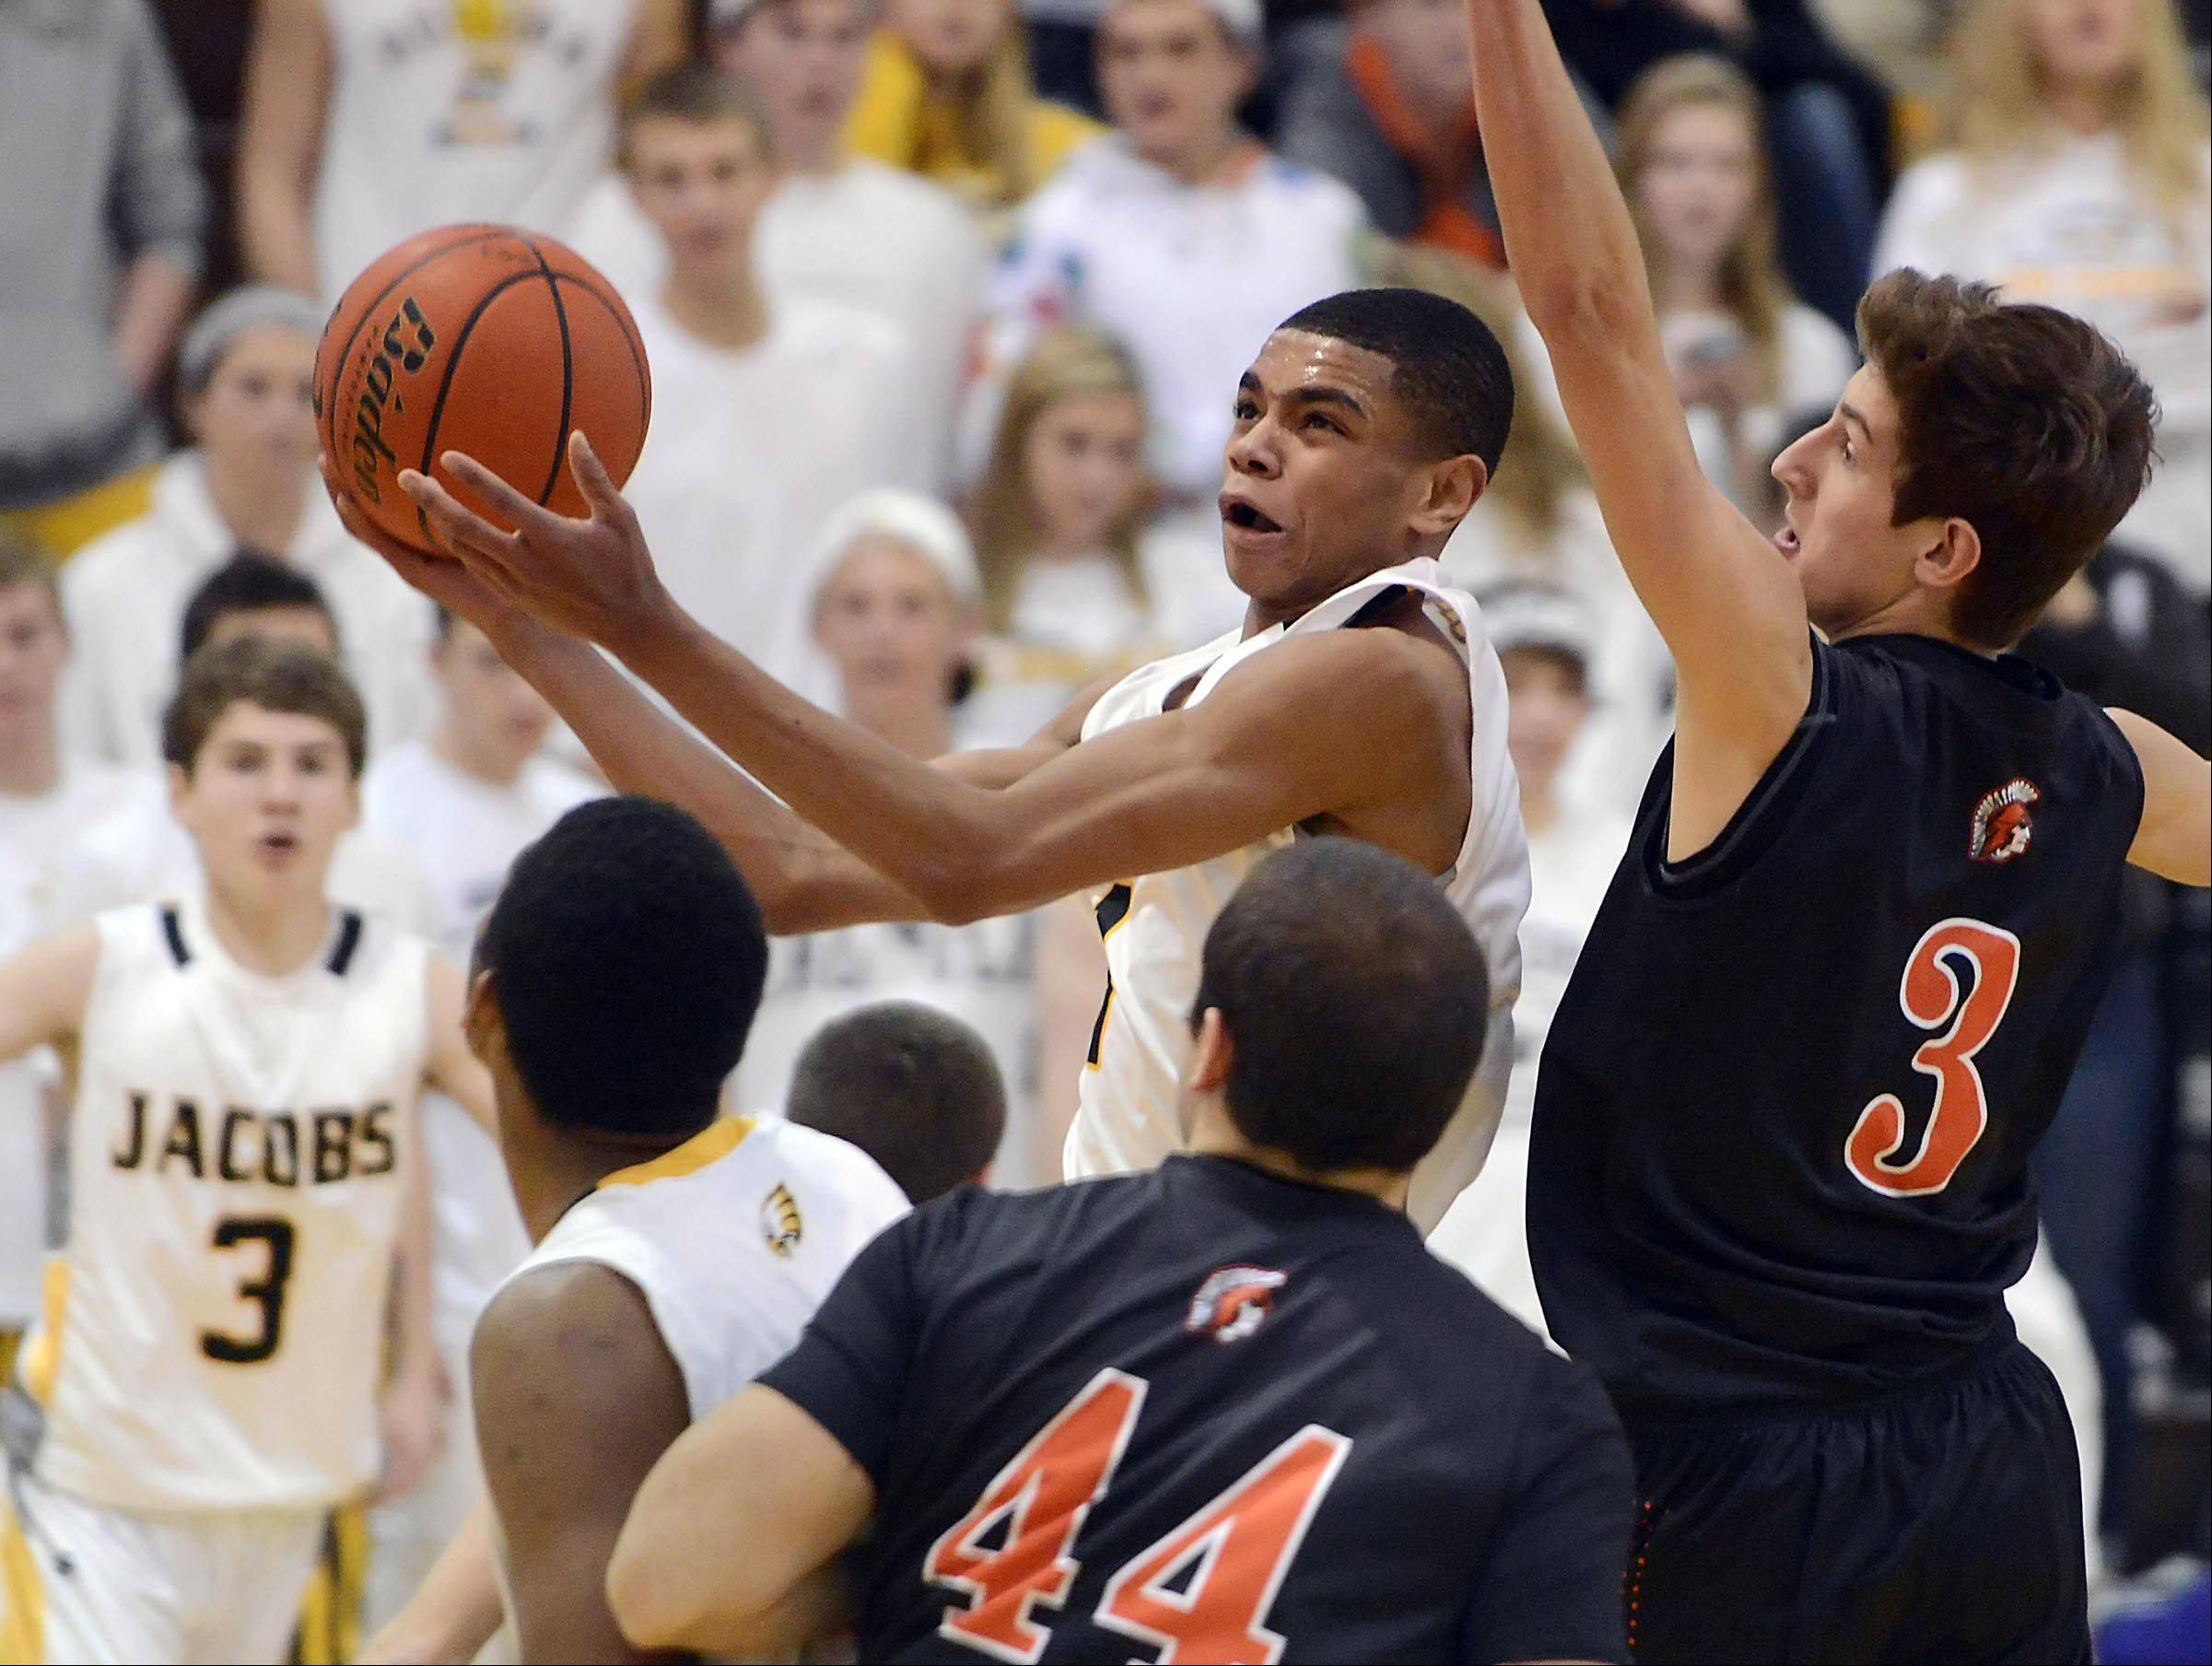 In the end, Jacobs stops McHenry